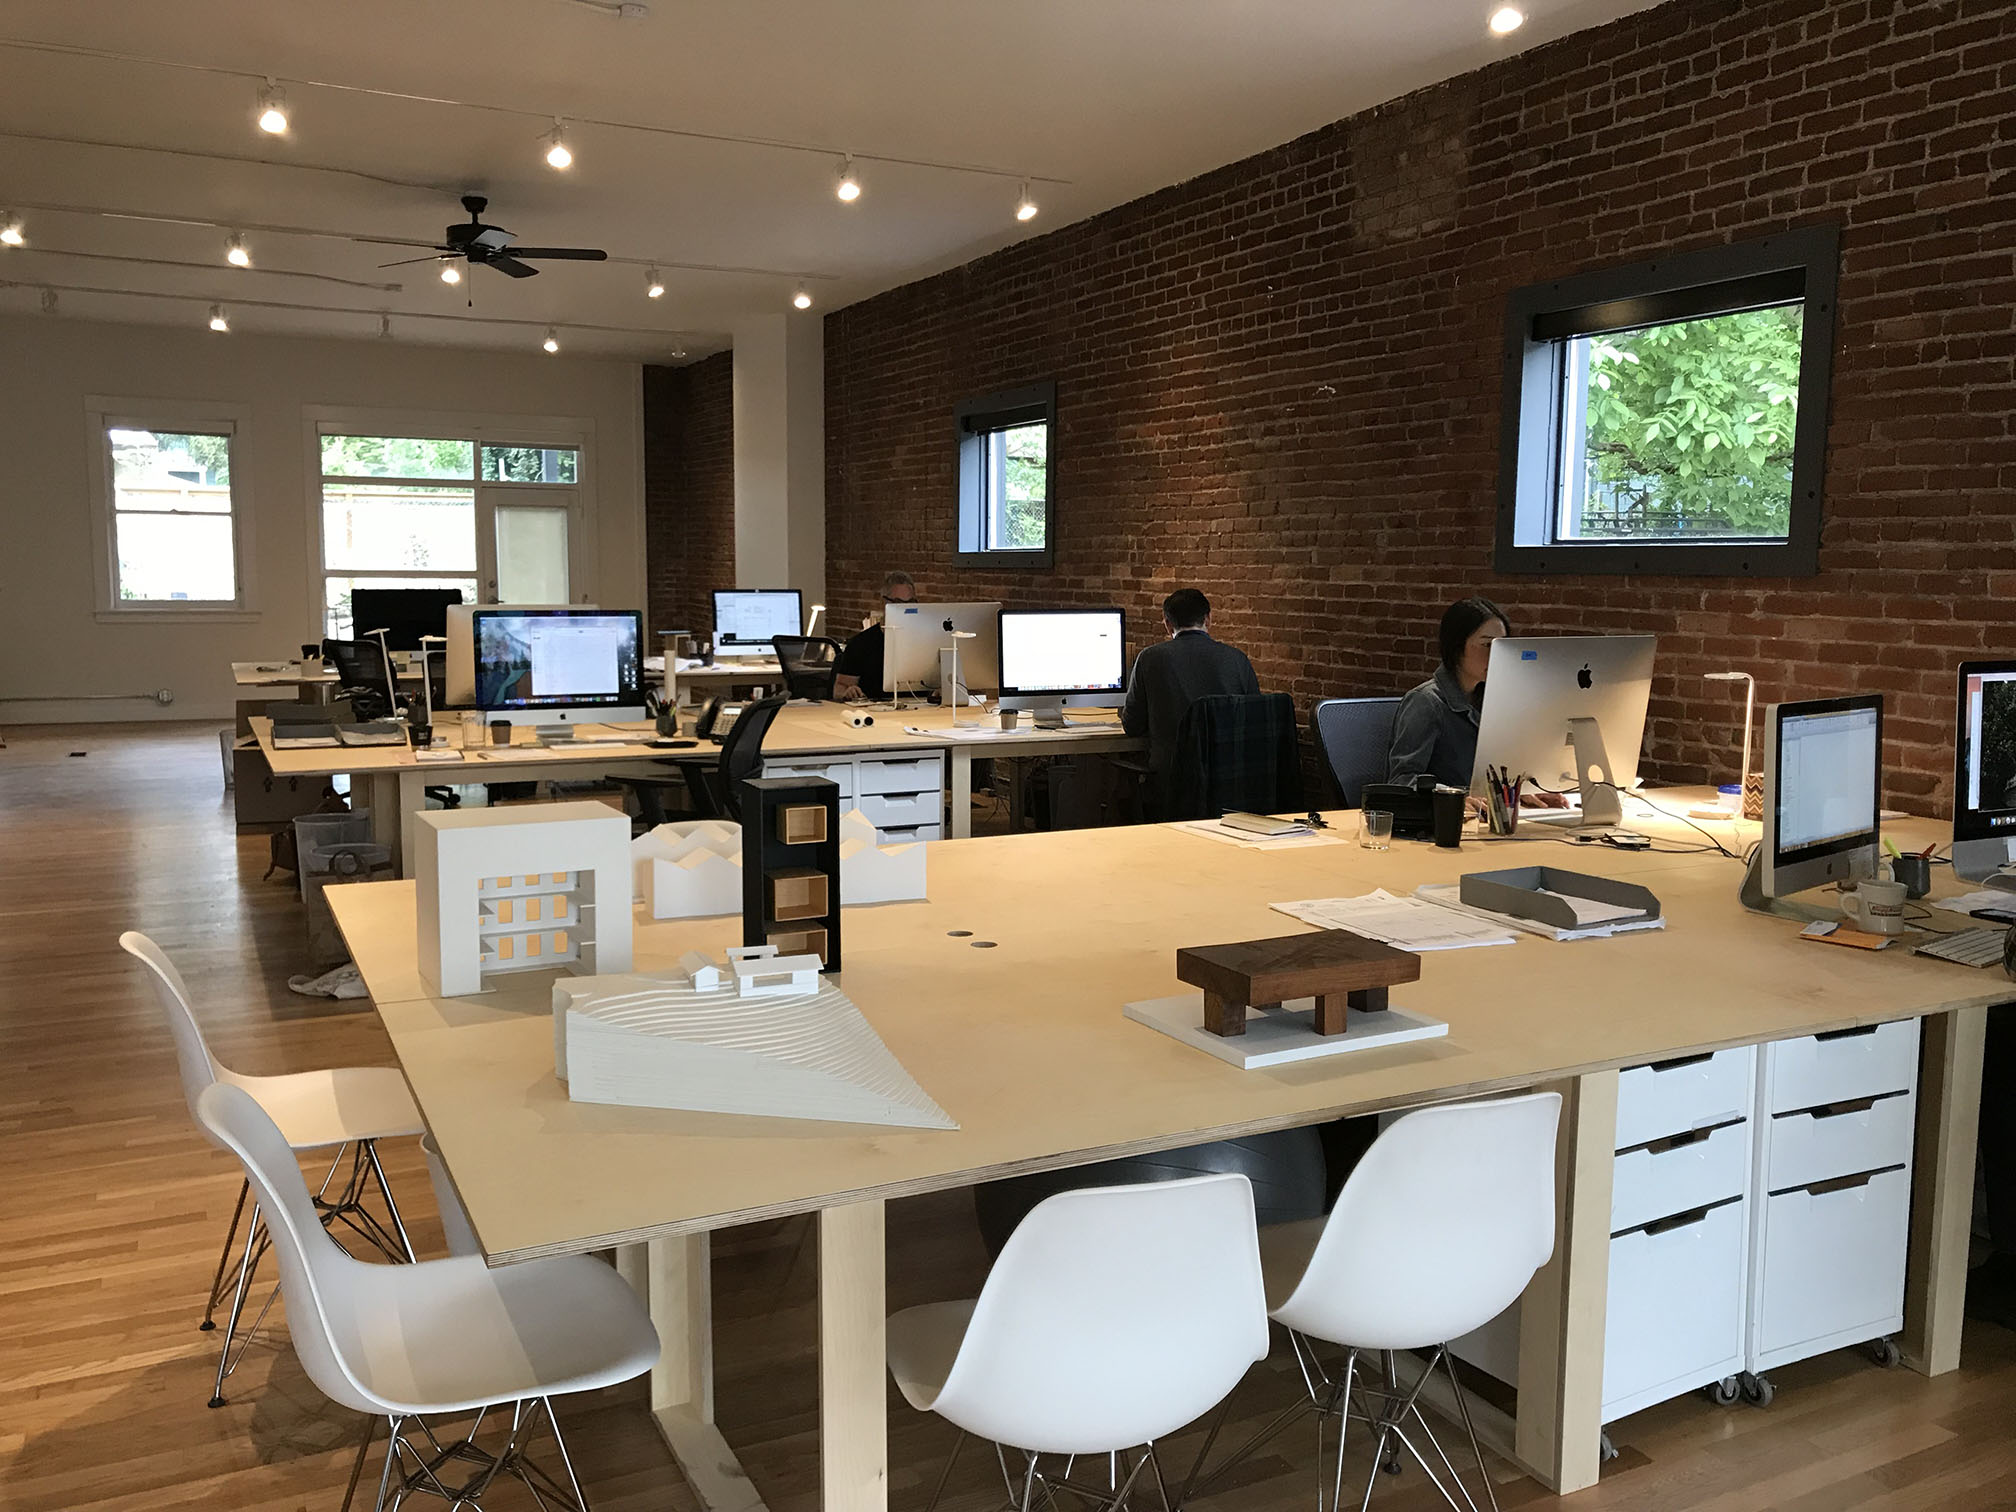 Waechter Architecture Workspace - Waechter Architecture